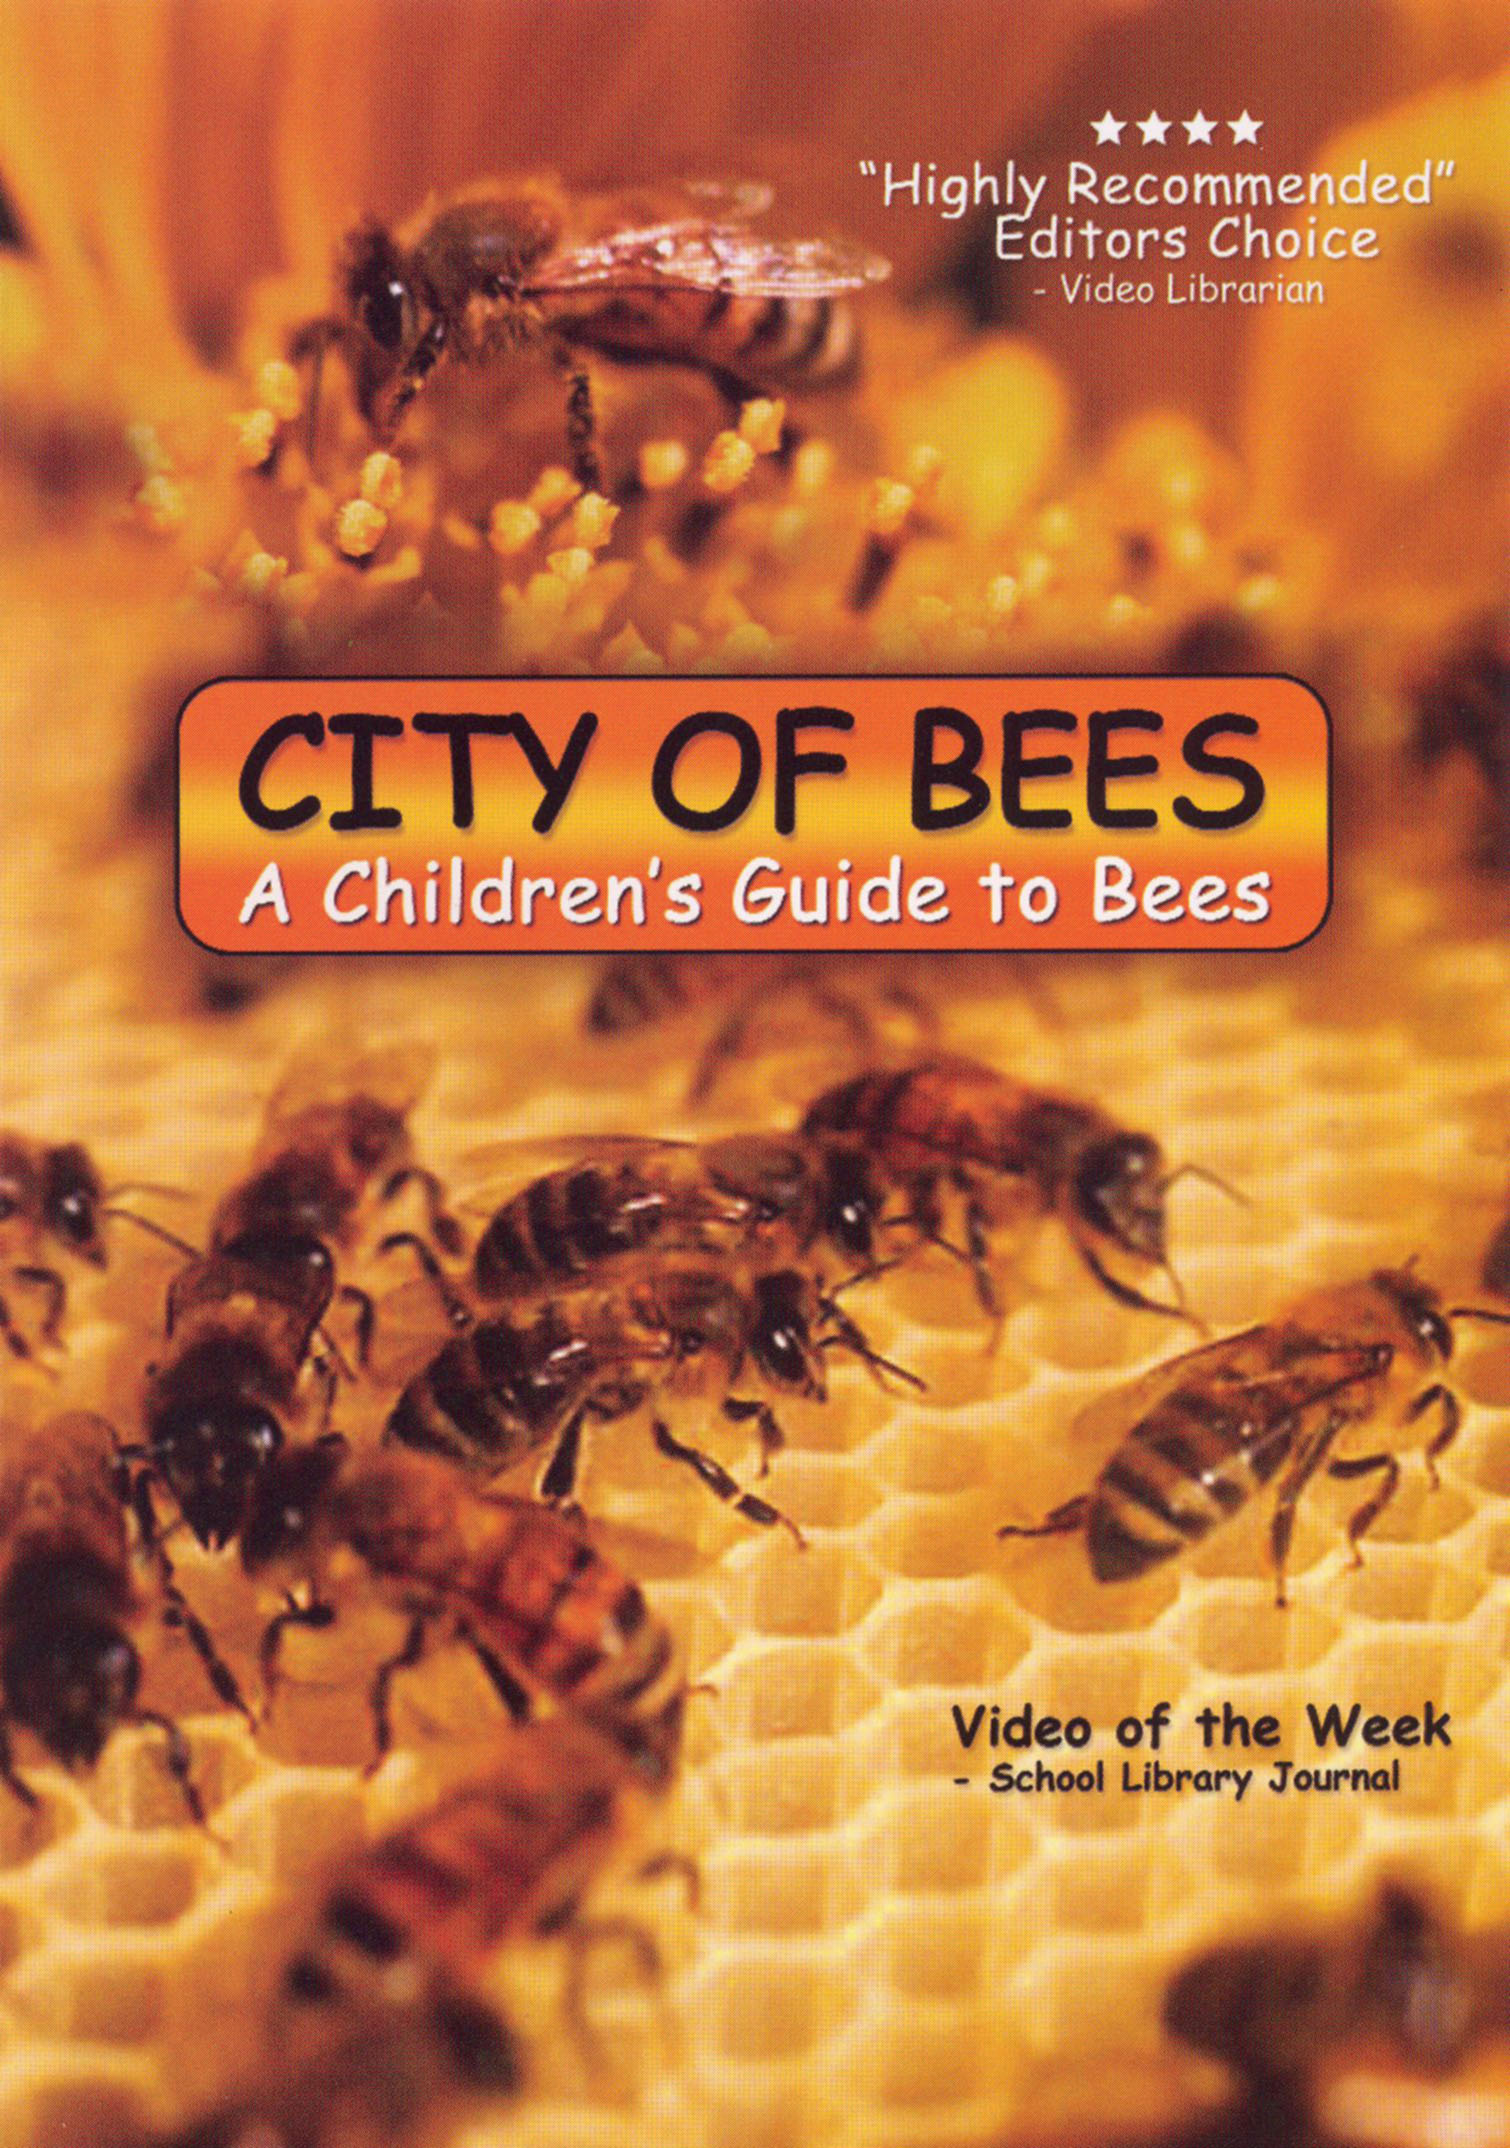 The City of Bees